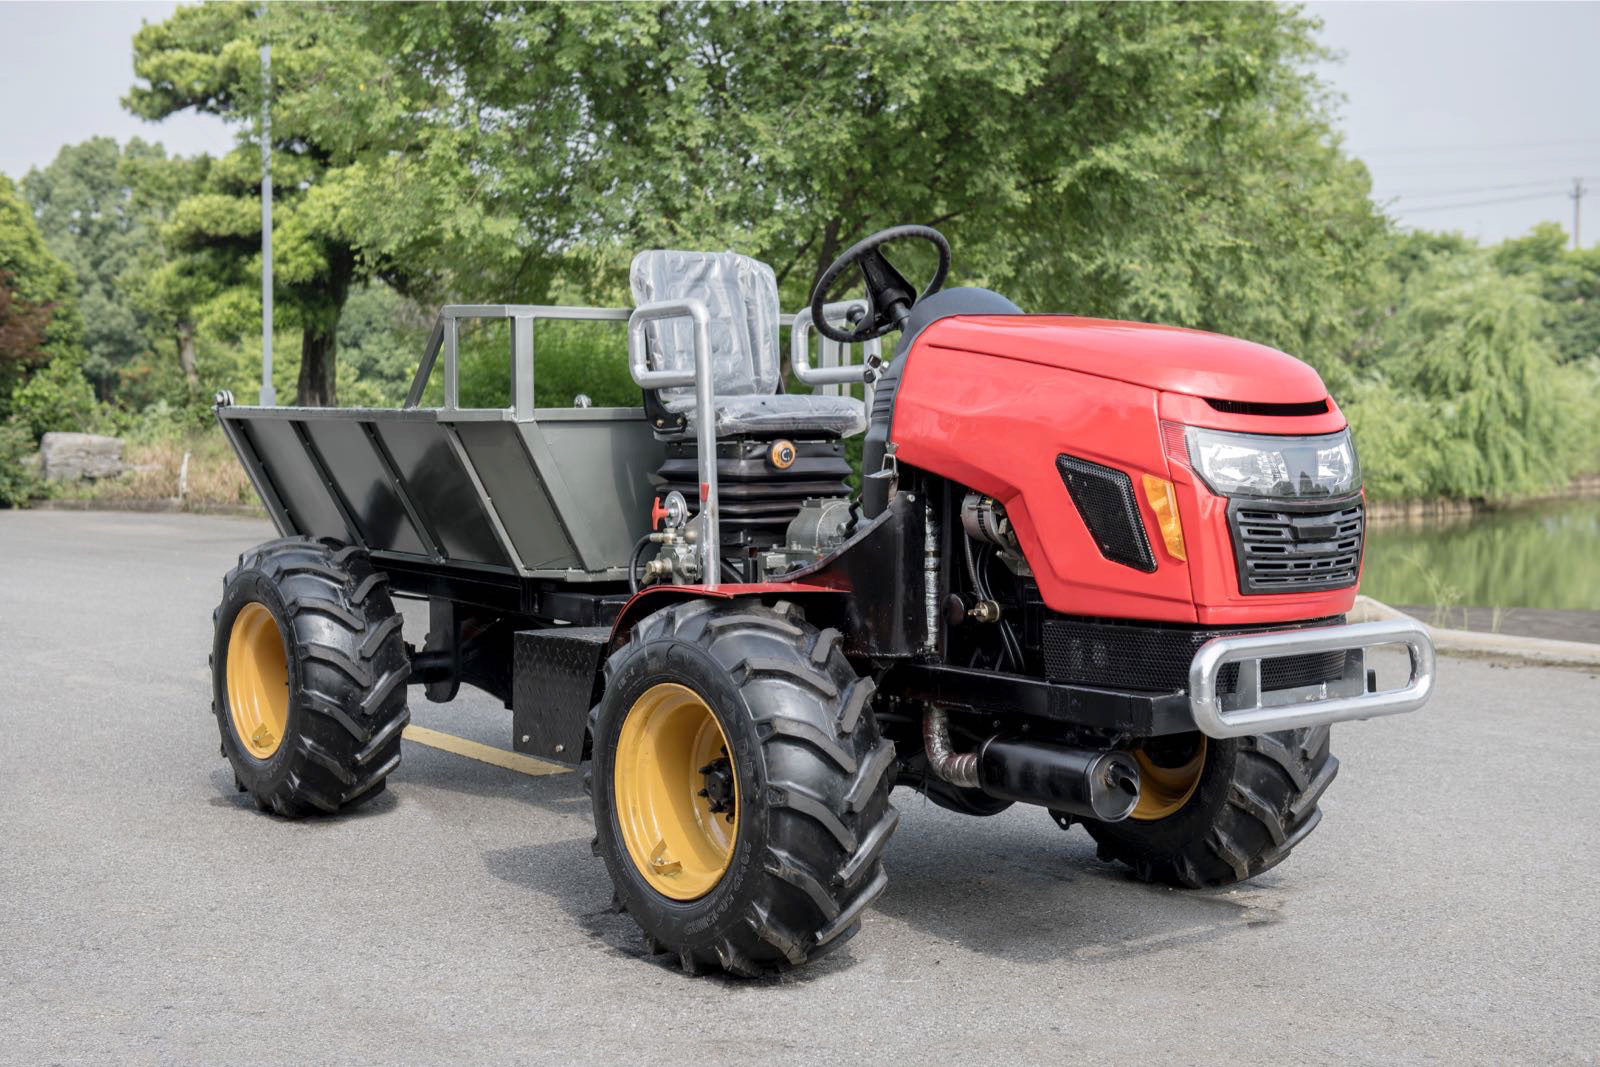 4WD Palm Garden Articulated Transporter Tractor(id:9603436